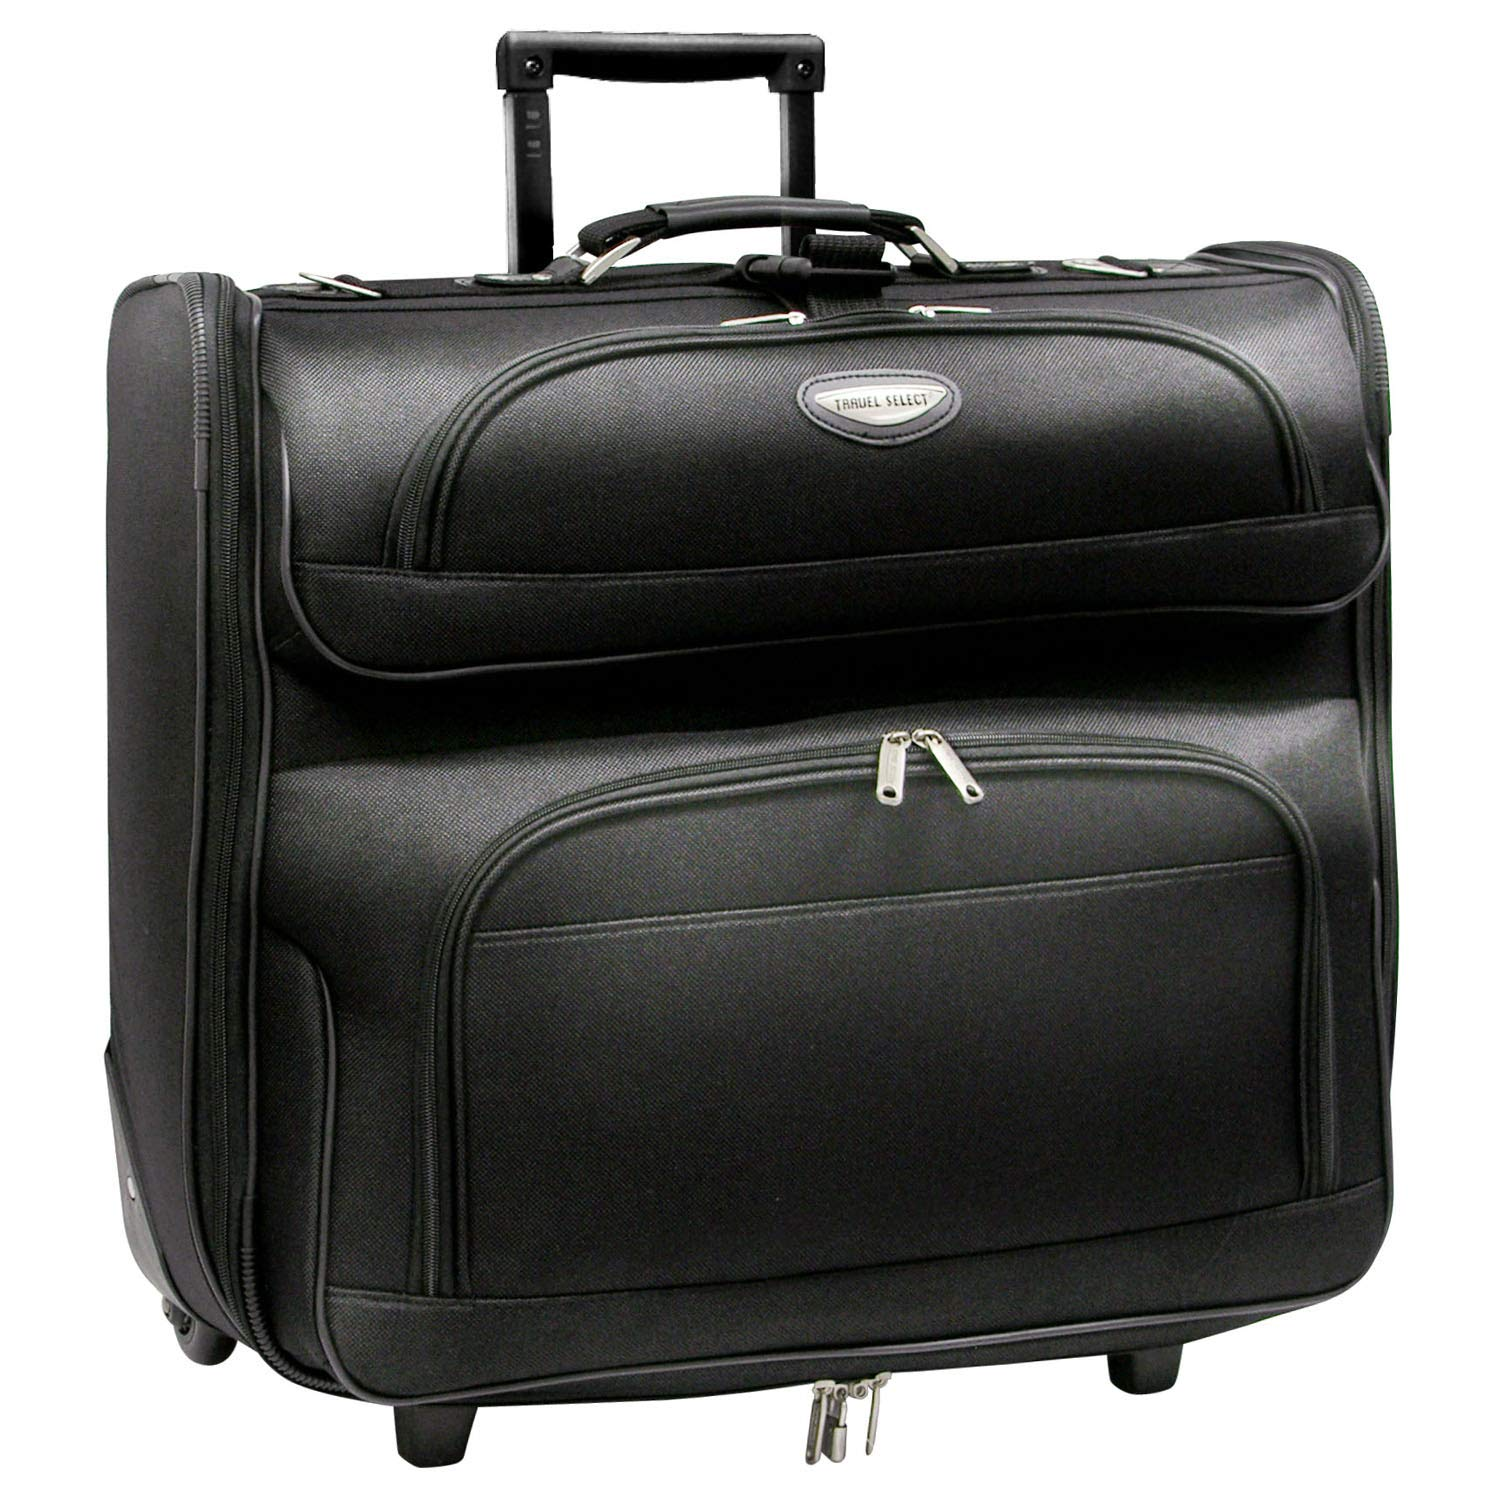 ee78c8466d0c Best Garment Bags in 2019 - Check in & Carry on Garment Bags for Travel